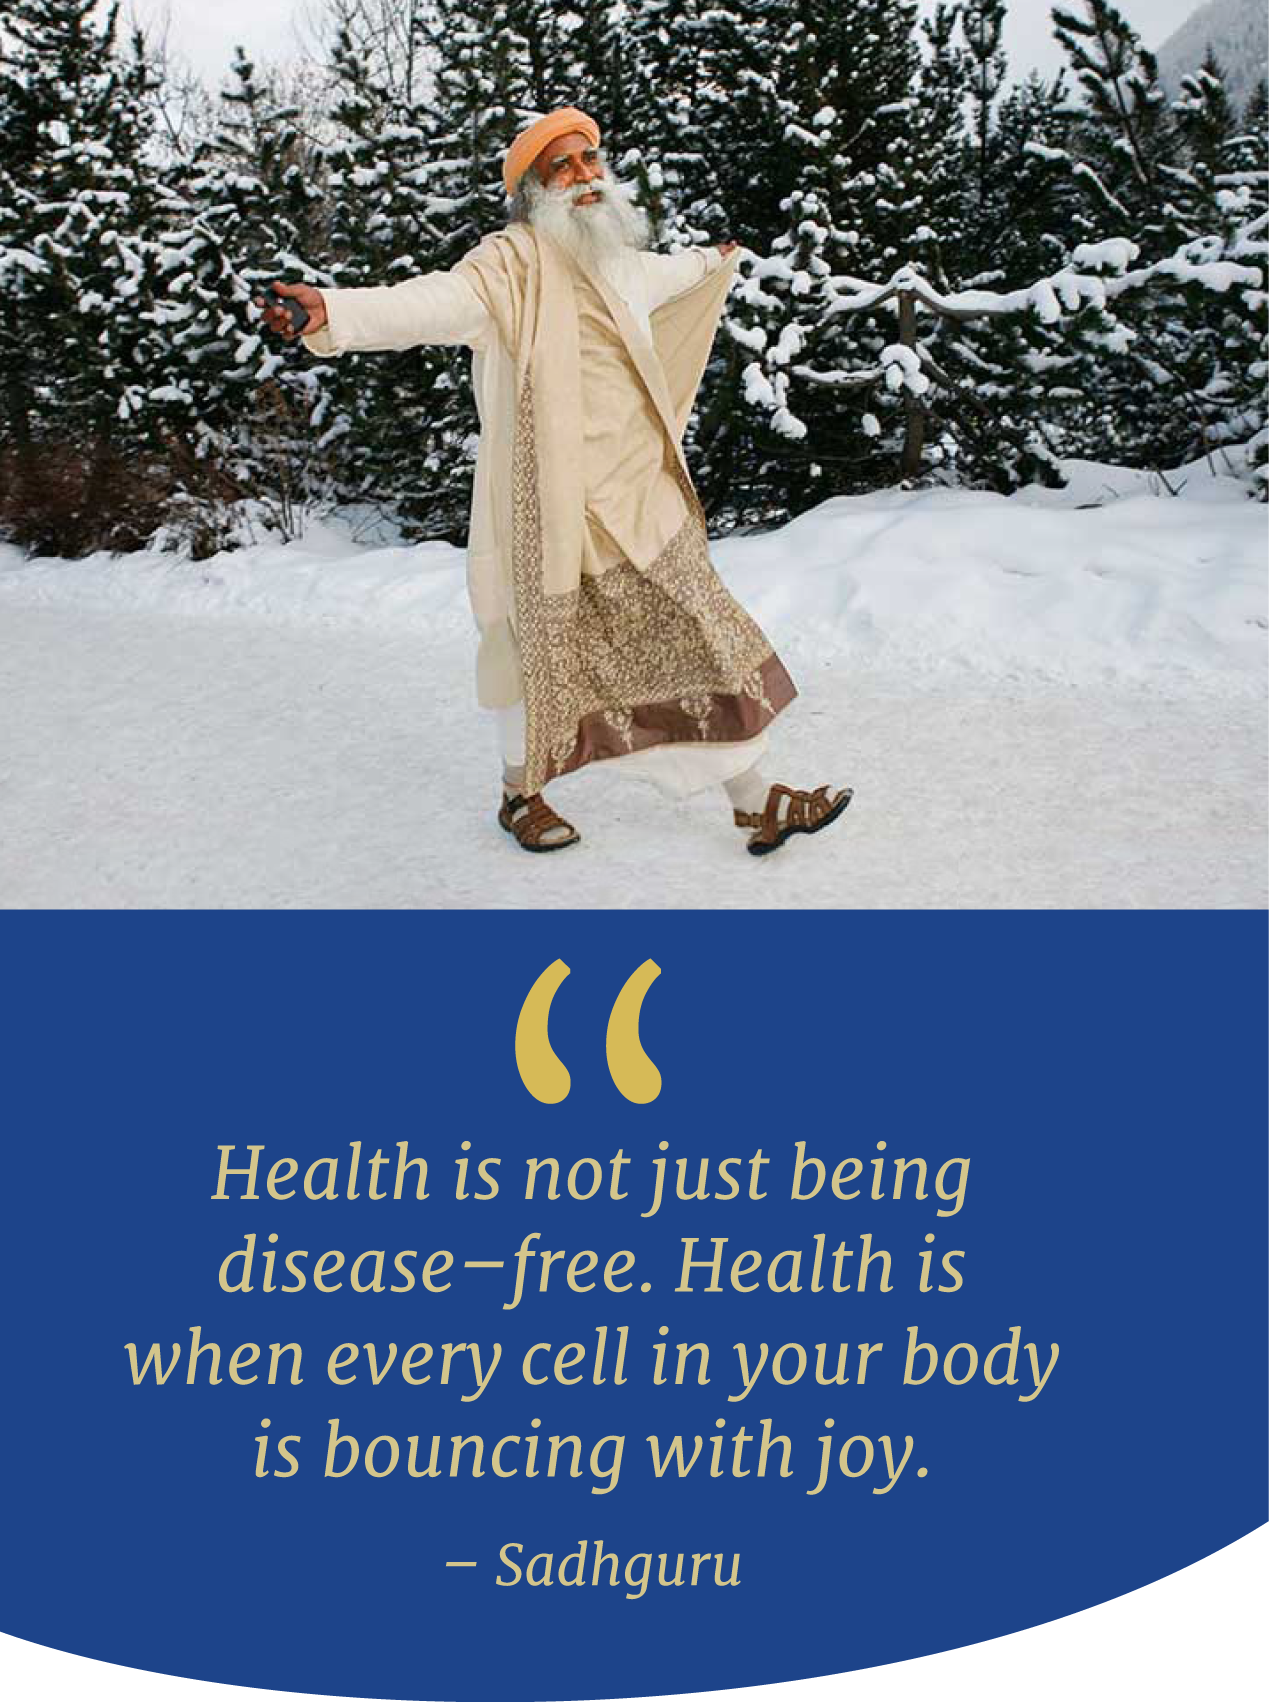 ieo_ie benefits-sadhguru-joy-mobile-02